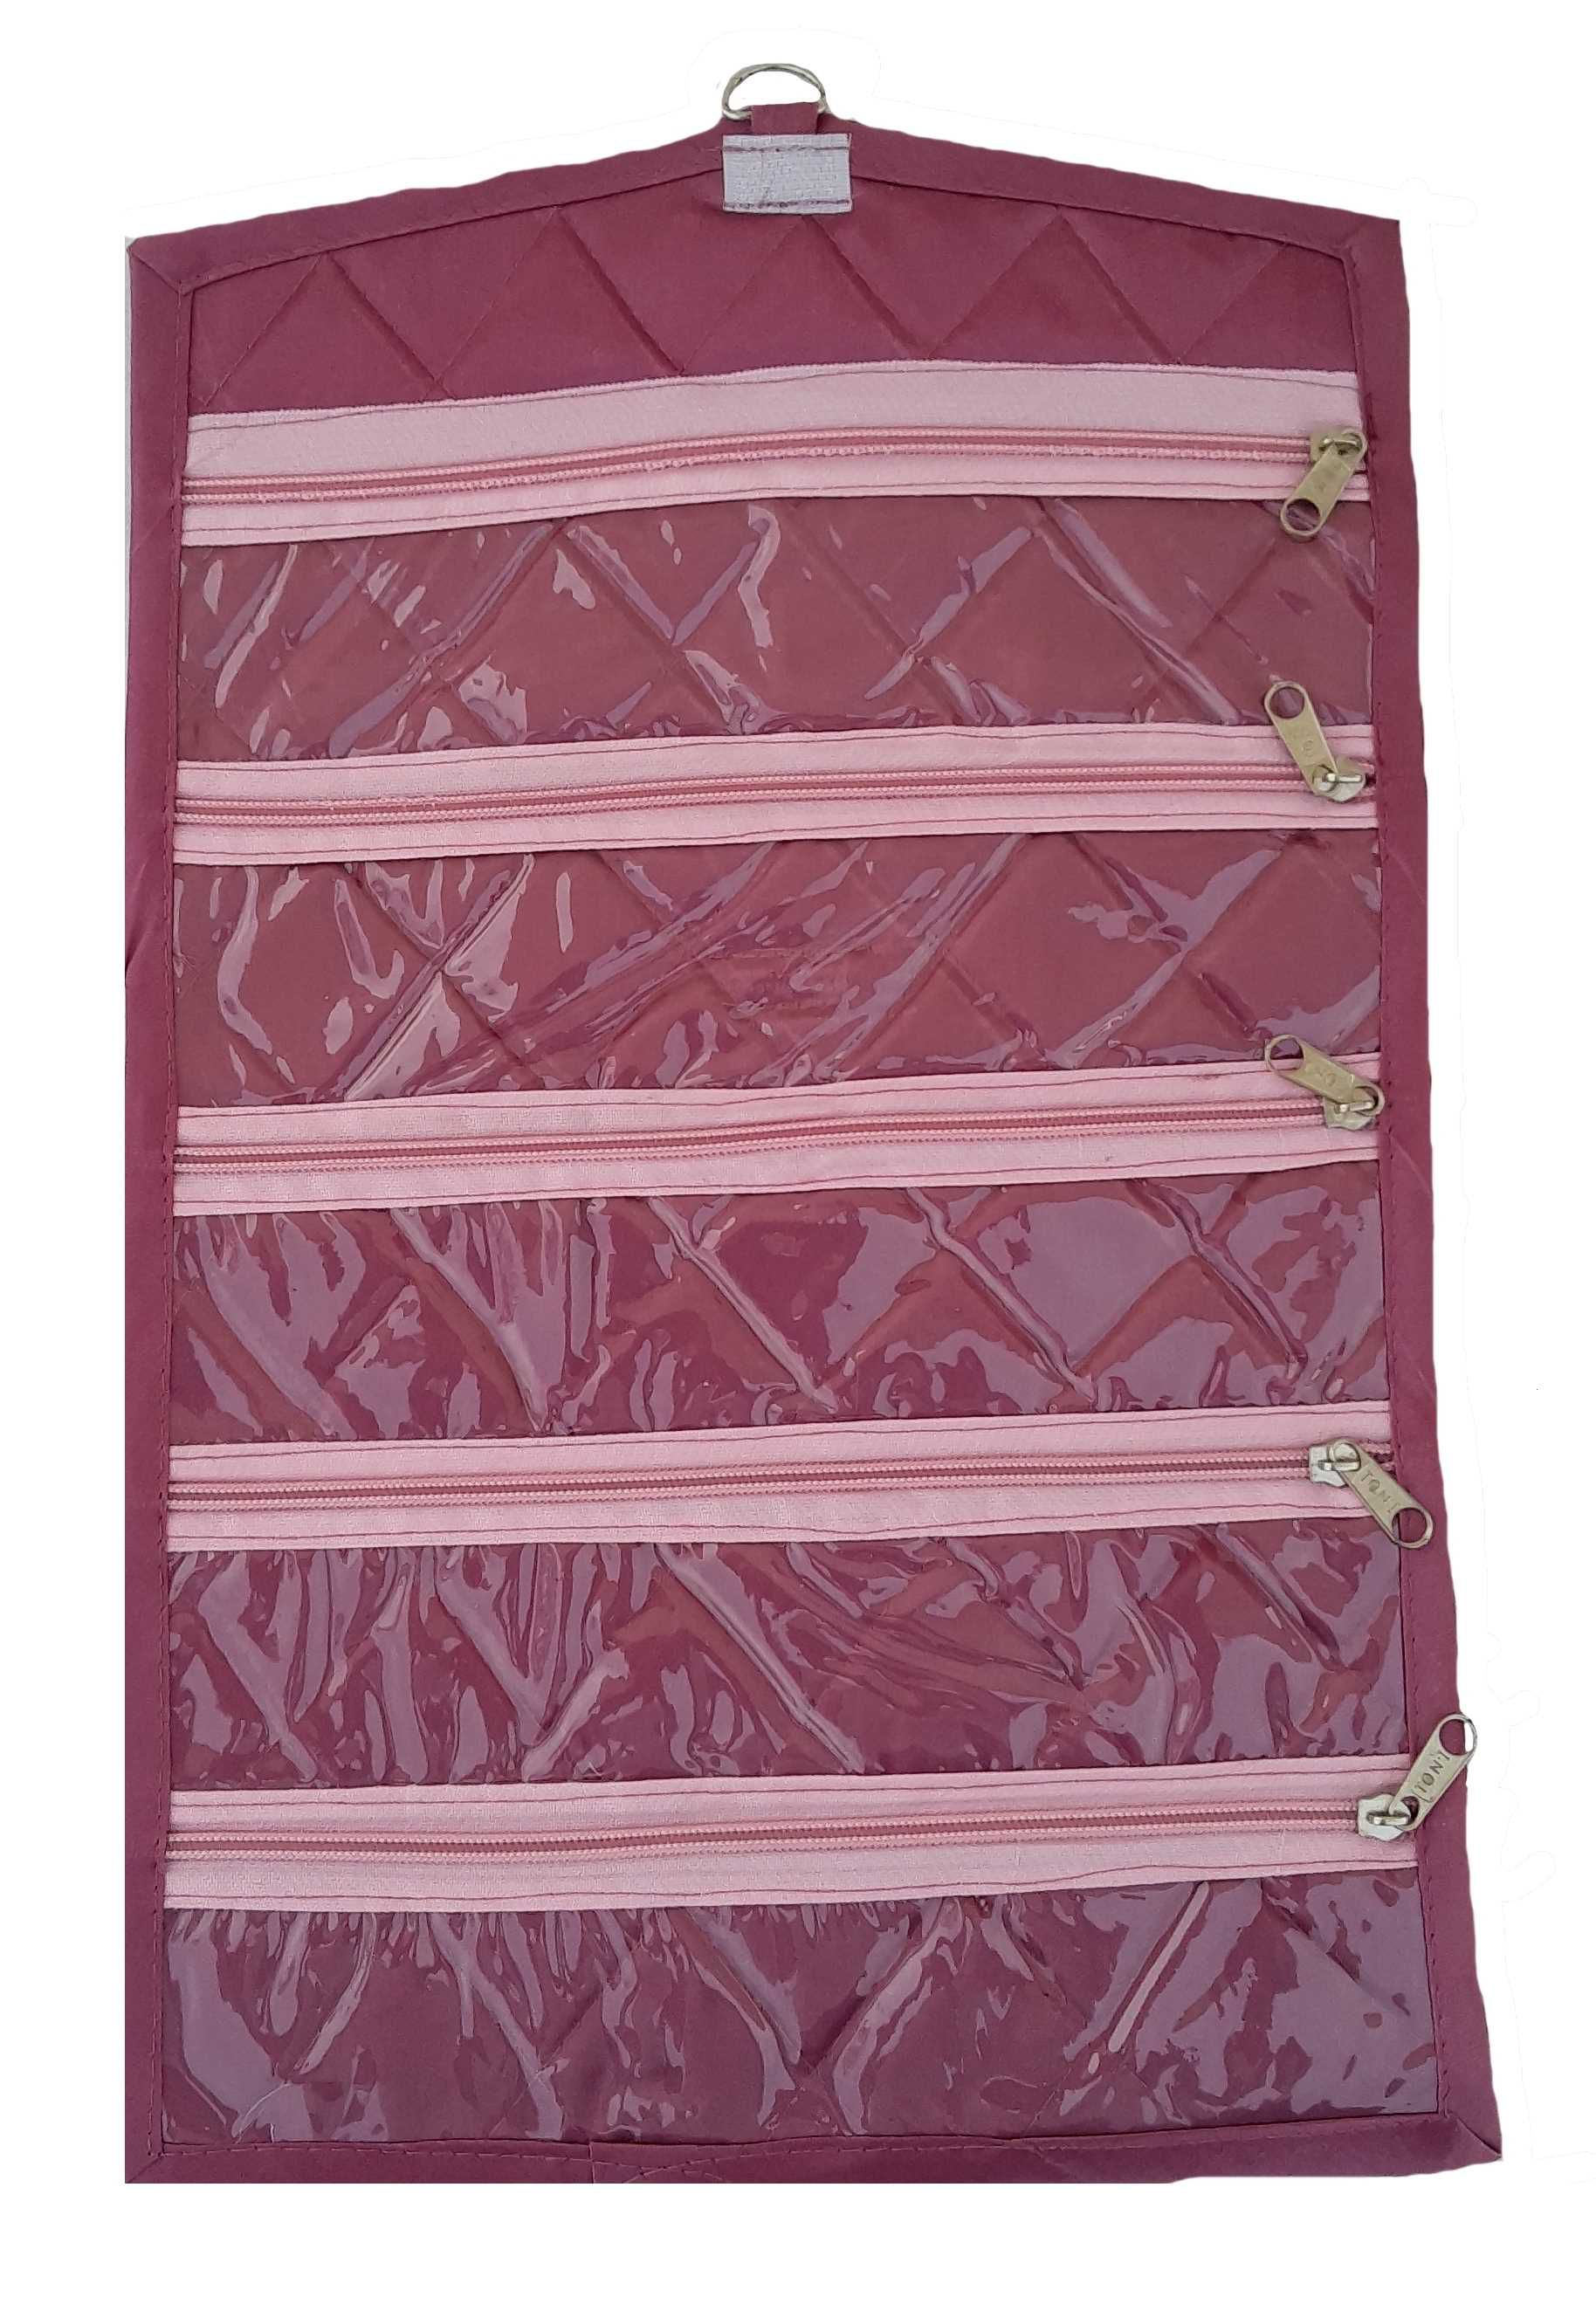 Indi Bargain Fabric Studded Pink Coloured Jewellery Box